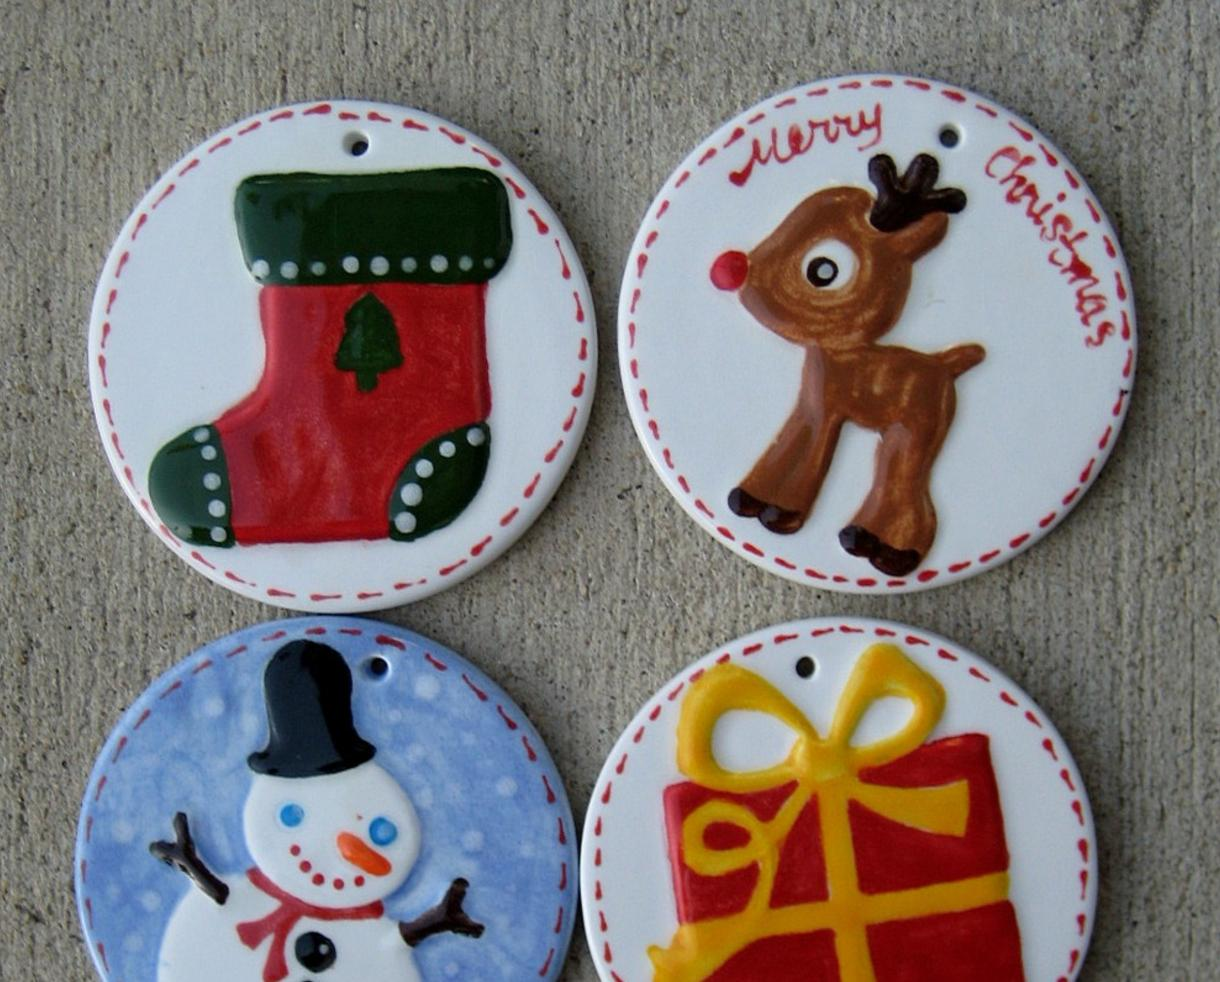 $20 for FOUR Holiday Ornaments PLUS Studio Fee at Clay Cafe of Chantilly (47% off )